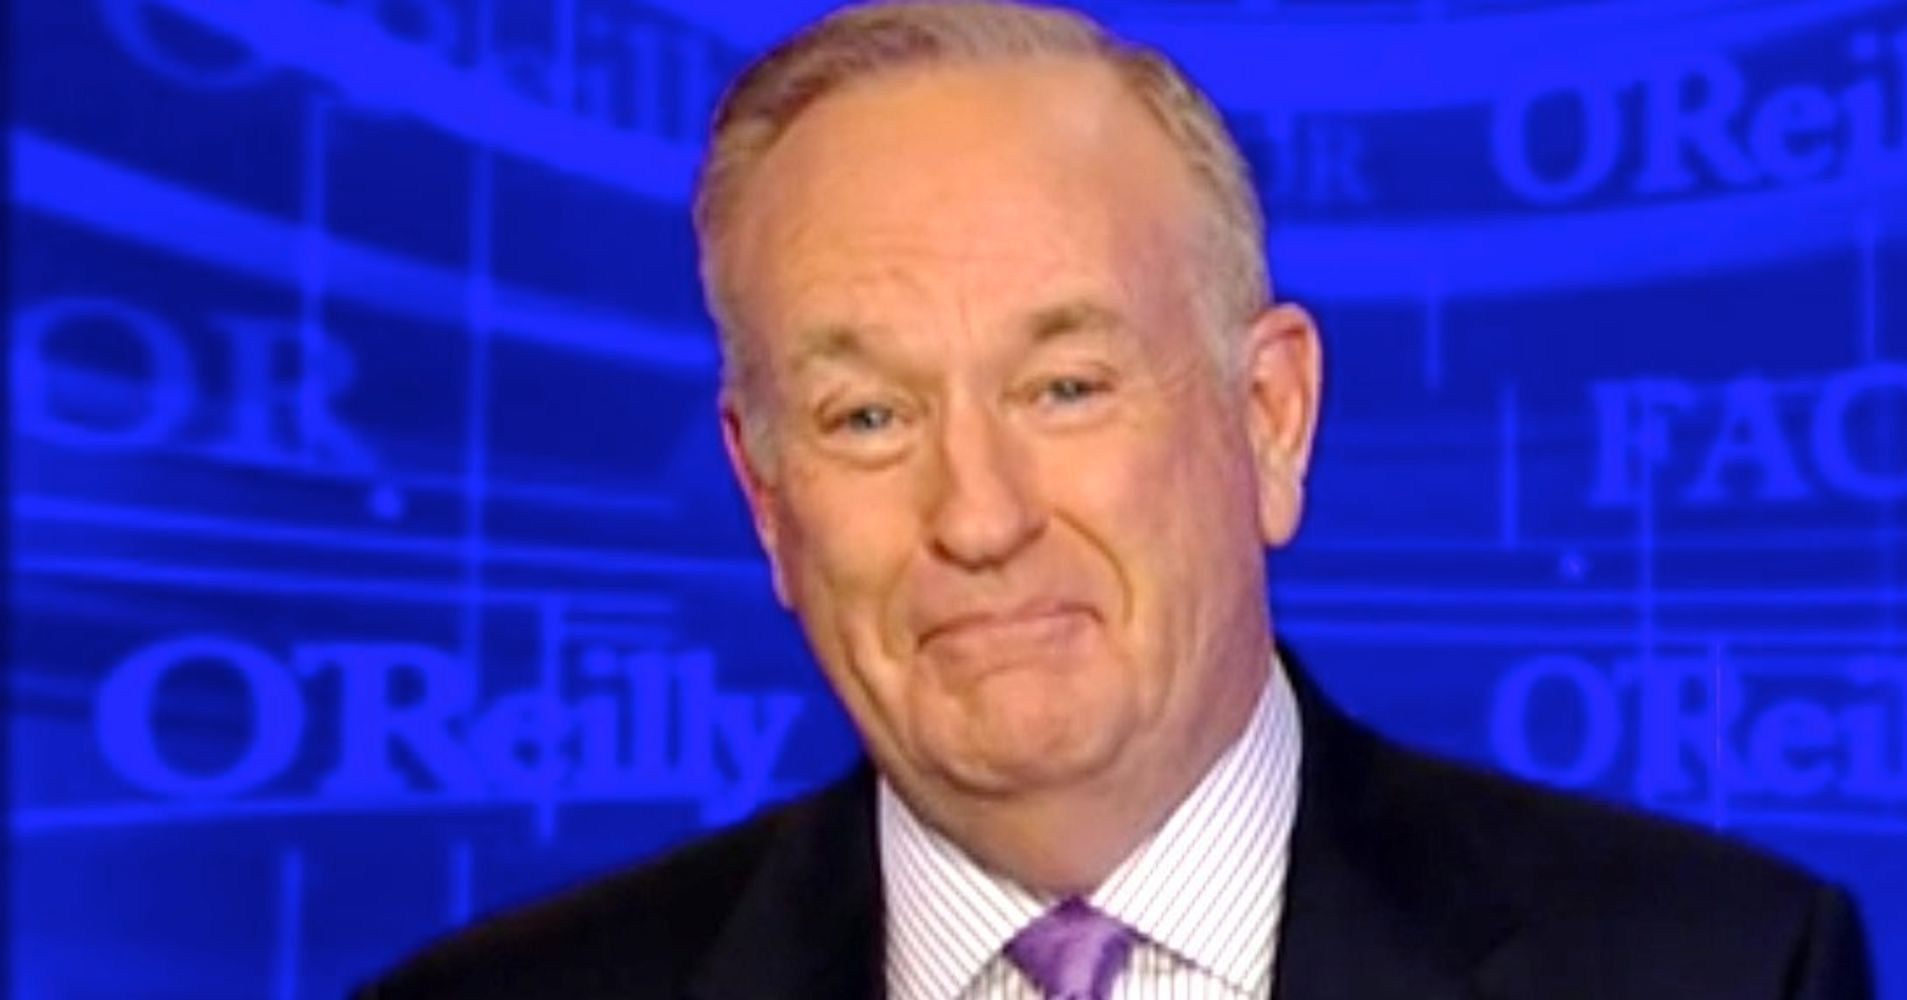 Watch Bill O'Reilly Snicker While 'Apologizing' For Mocking Maxine Waters |  HuffPost